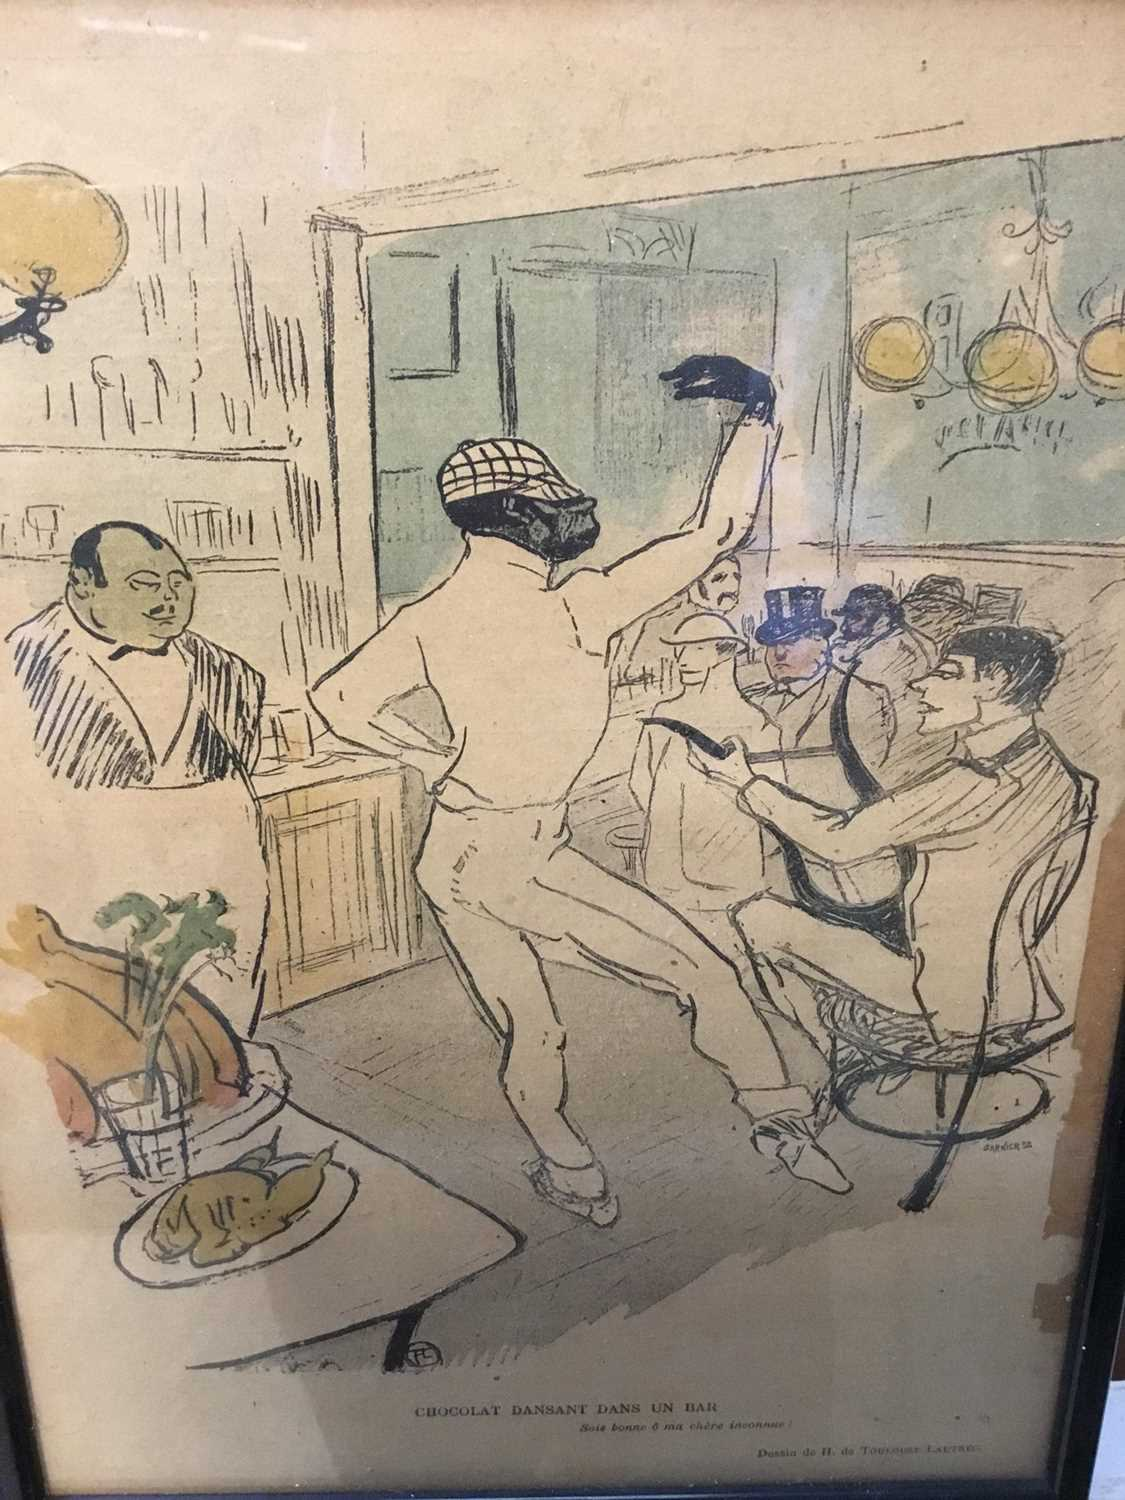 Toulouse-Lautrec three original plates from Le Rire